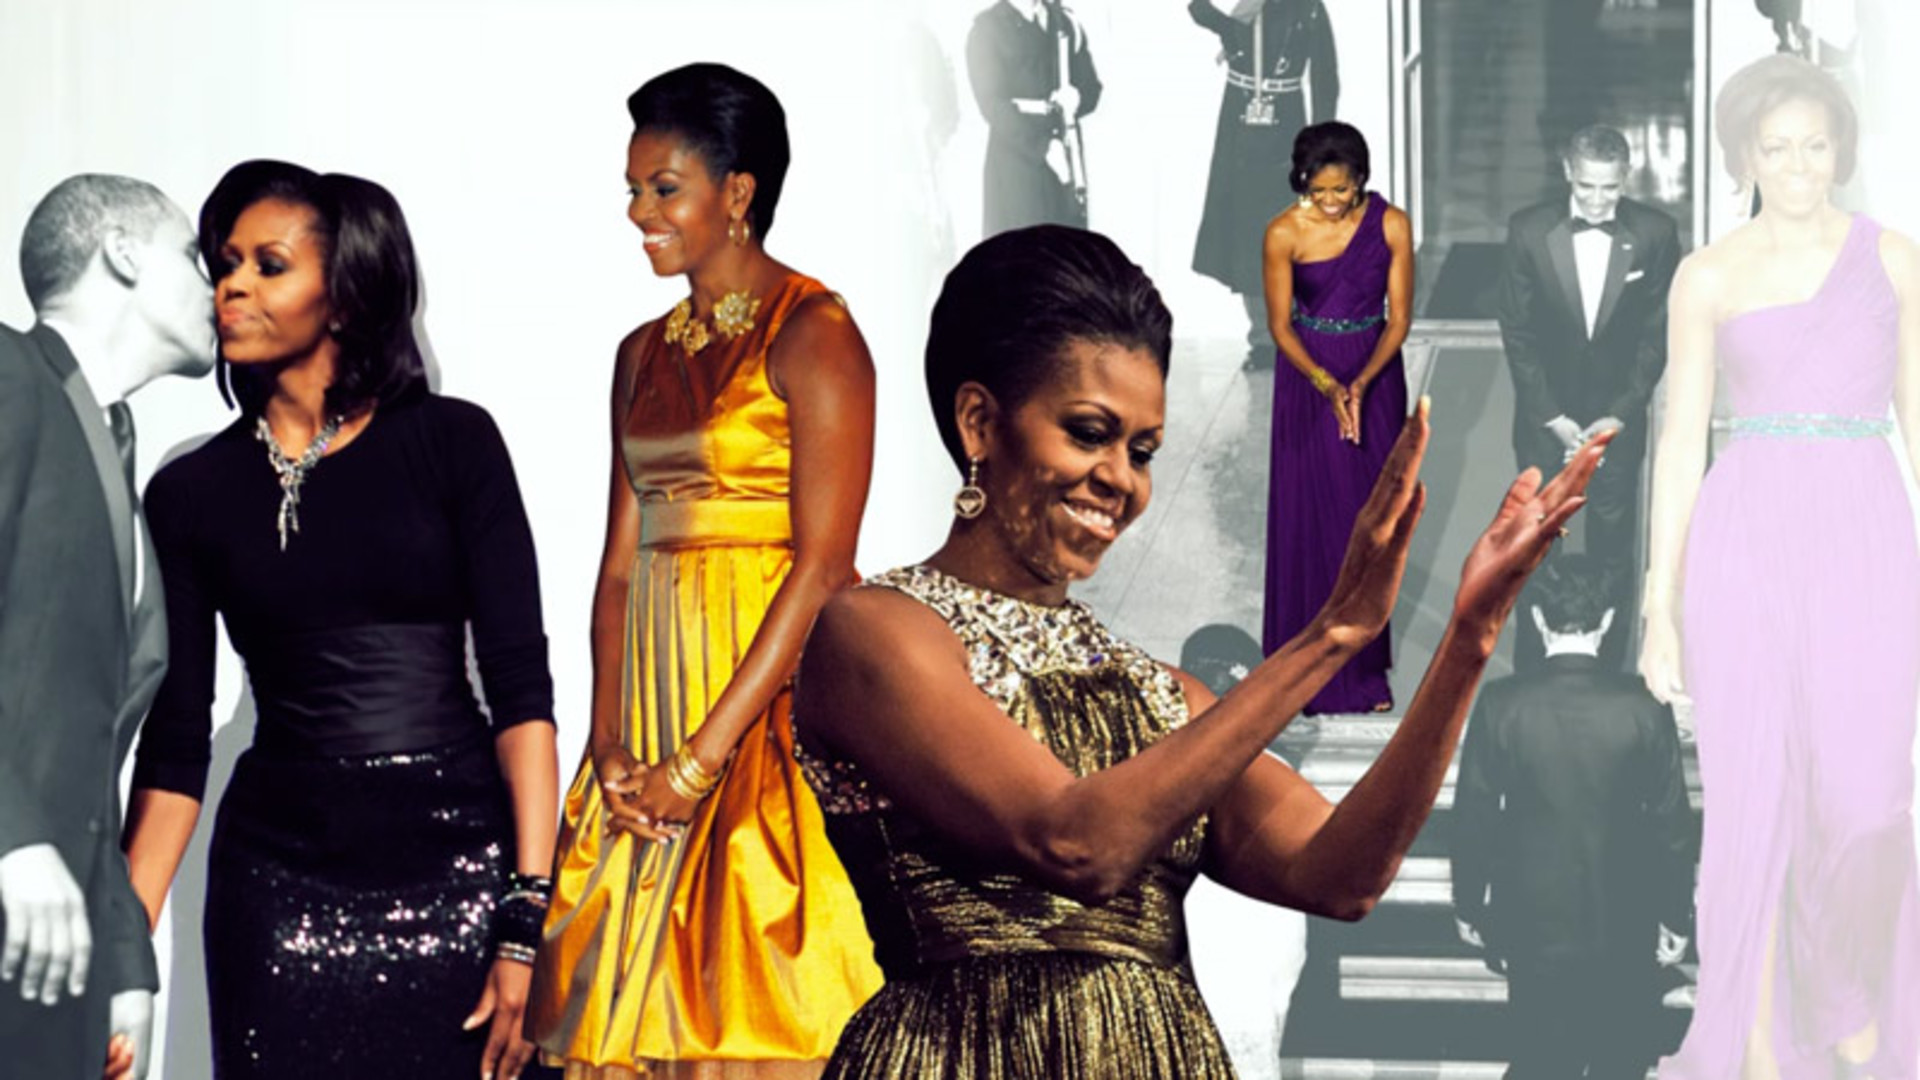 Vogue Diaries - Michelle Obama's Best Looks Throughout the Years